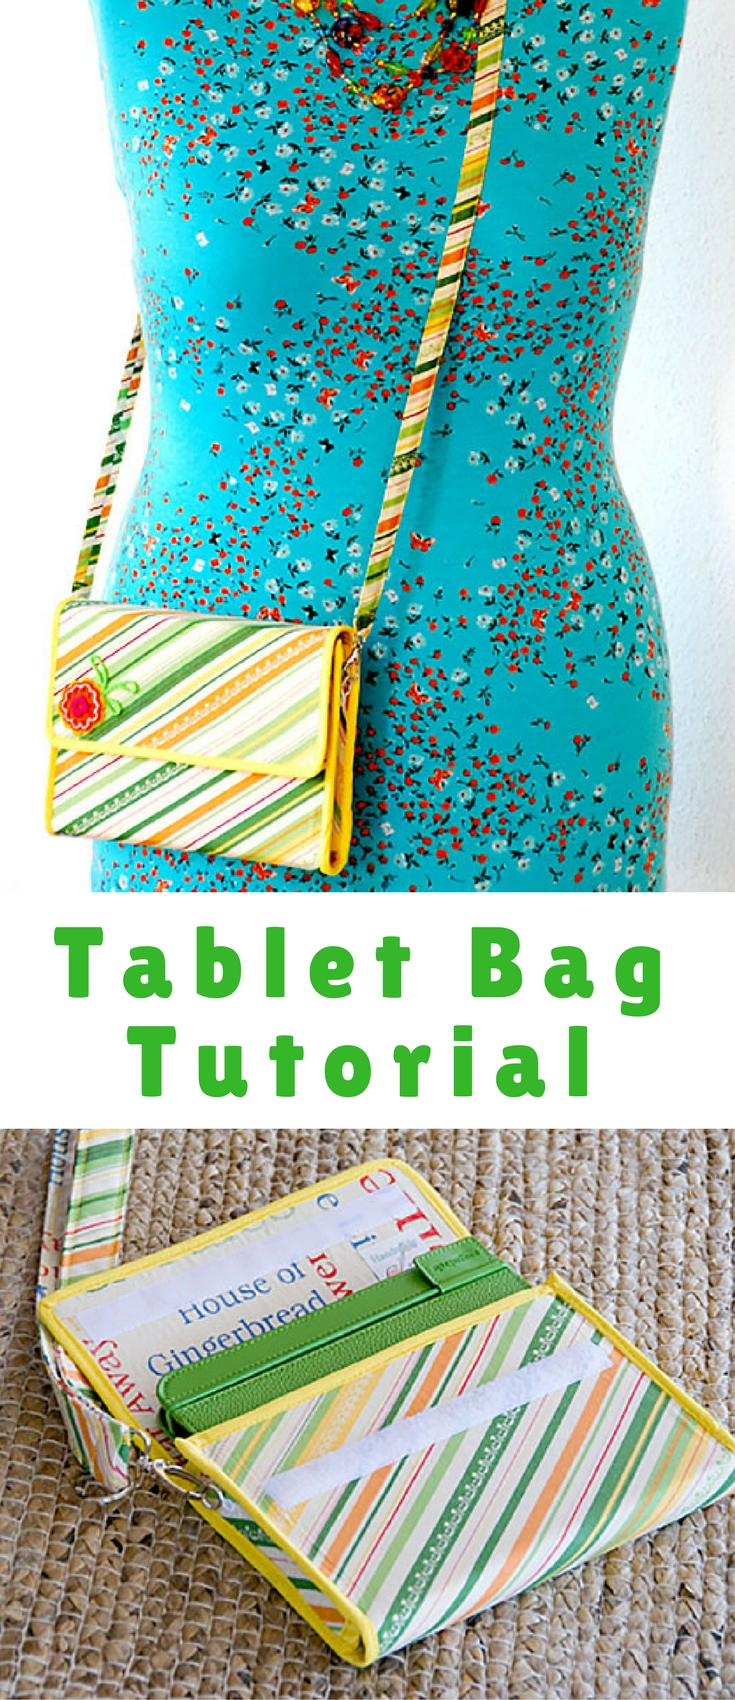 Here's how I made a Tablet Bag, with instructions, as well as a way to adapt it to different gadgets, like an iPad, or laptop.